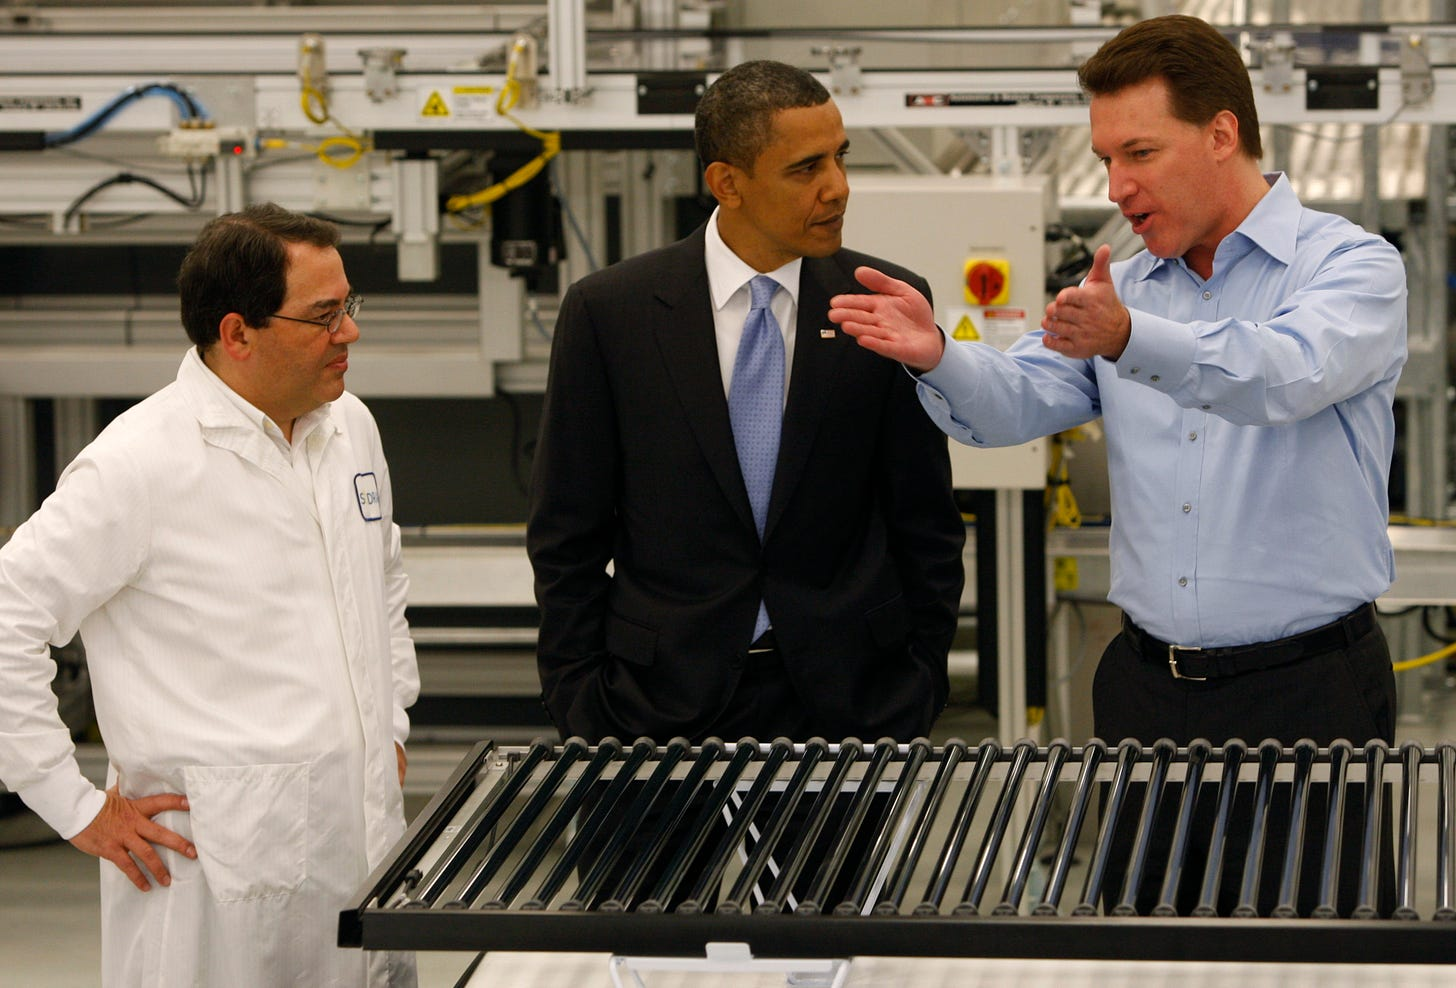 Solyndra staff explain their solar tubes to Barack Obama on May 26, 2010, in Fremont, California. (Photo: Getty Images)